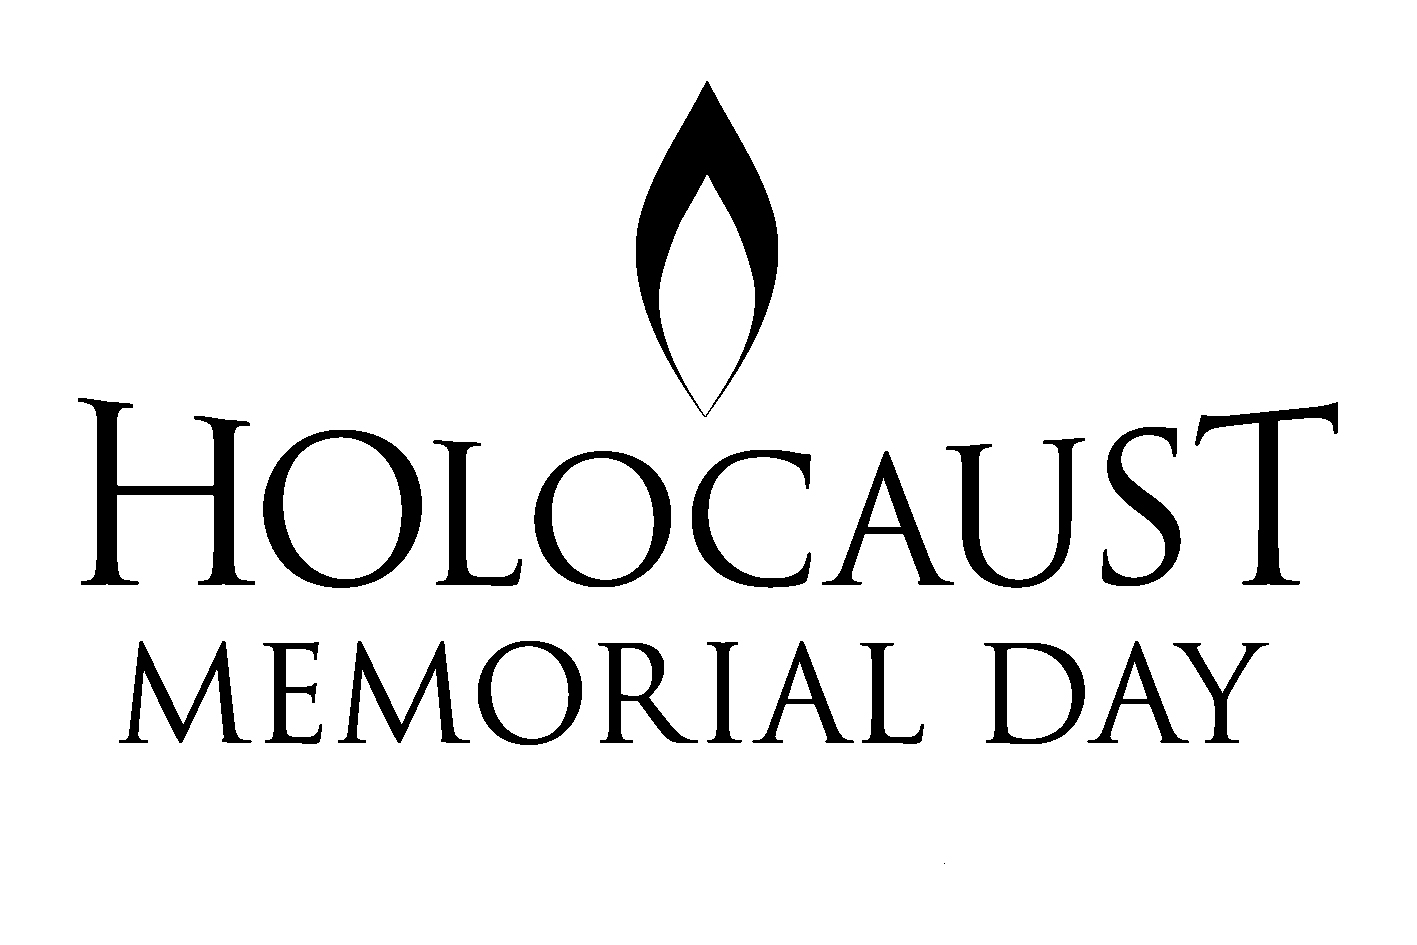 Holocaust Memoridal day